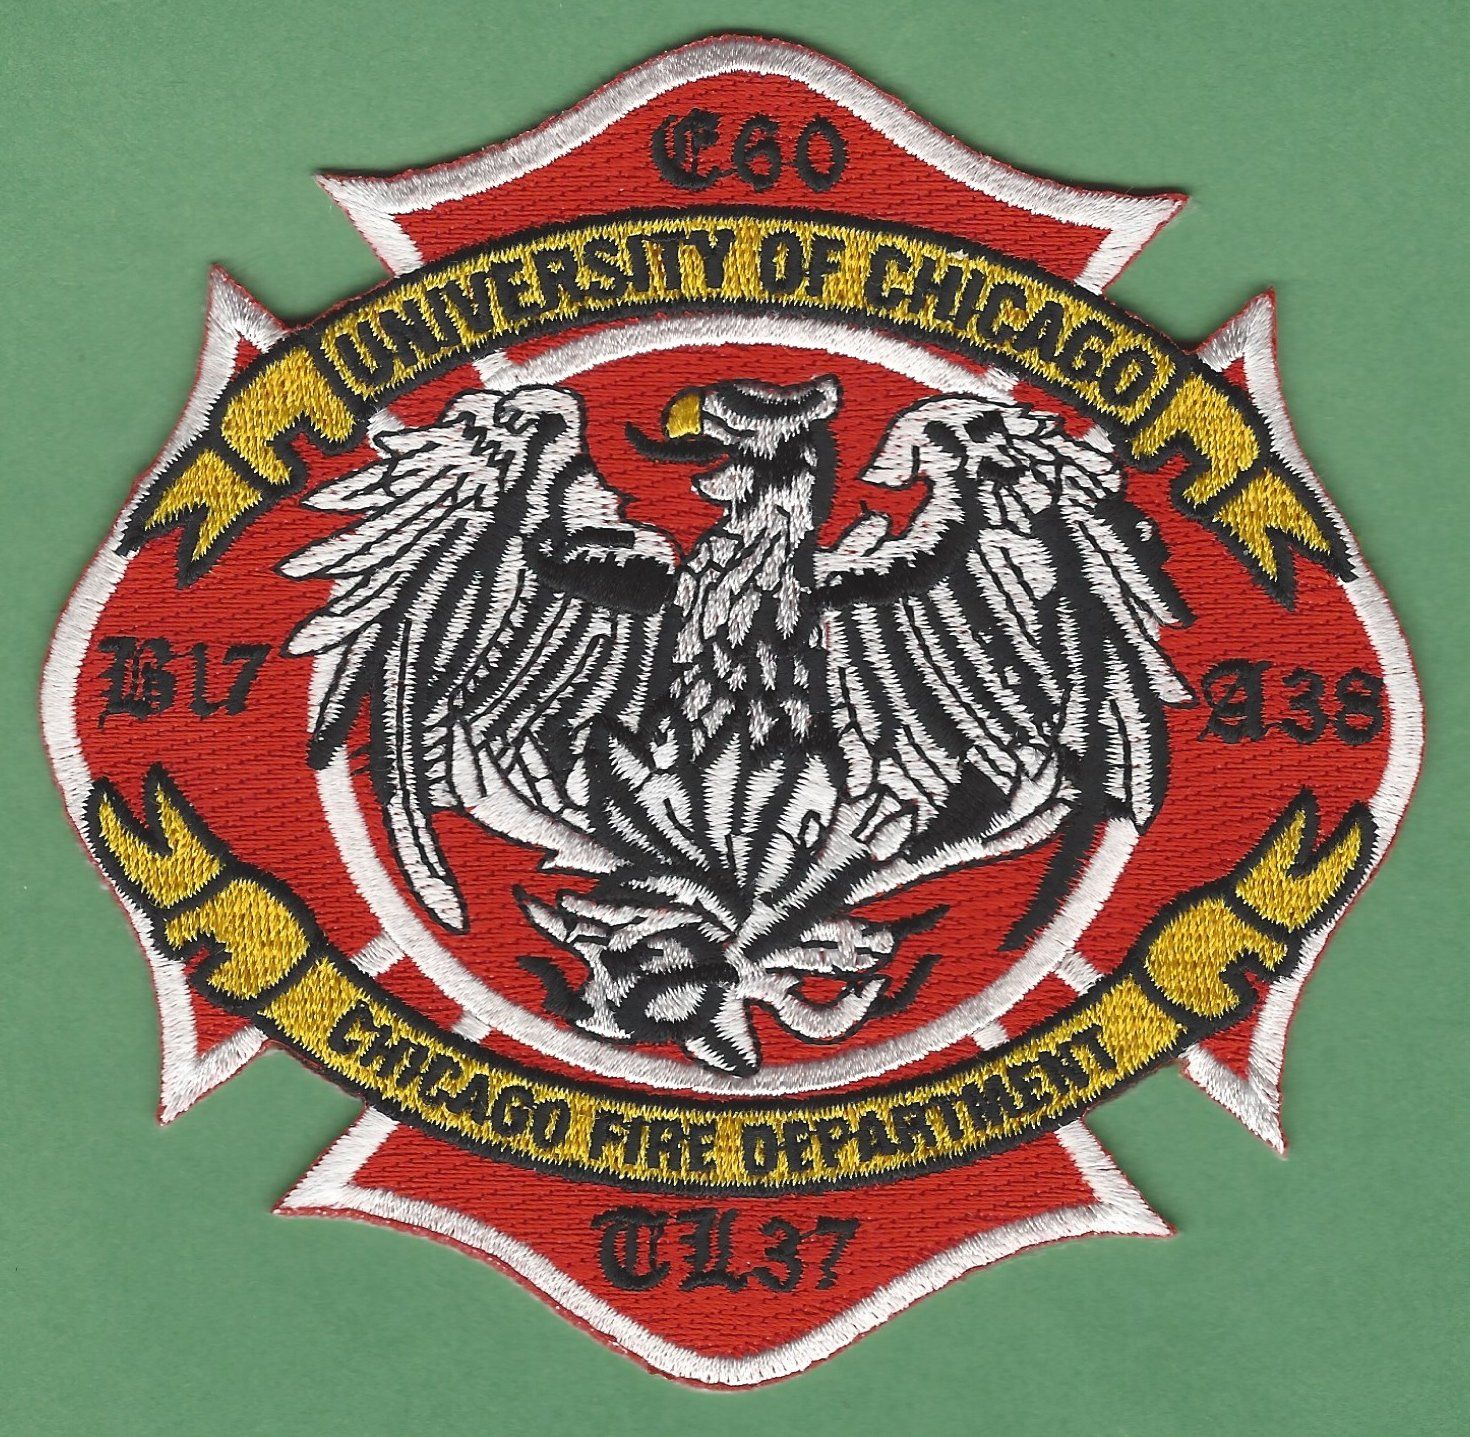 Chicago fire department engine 60 tower ladder 37 company brevs chicago fire department engine 60 tower ladder 37 company biocorpaavc